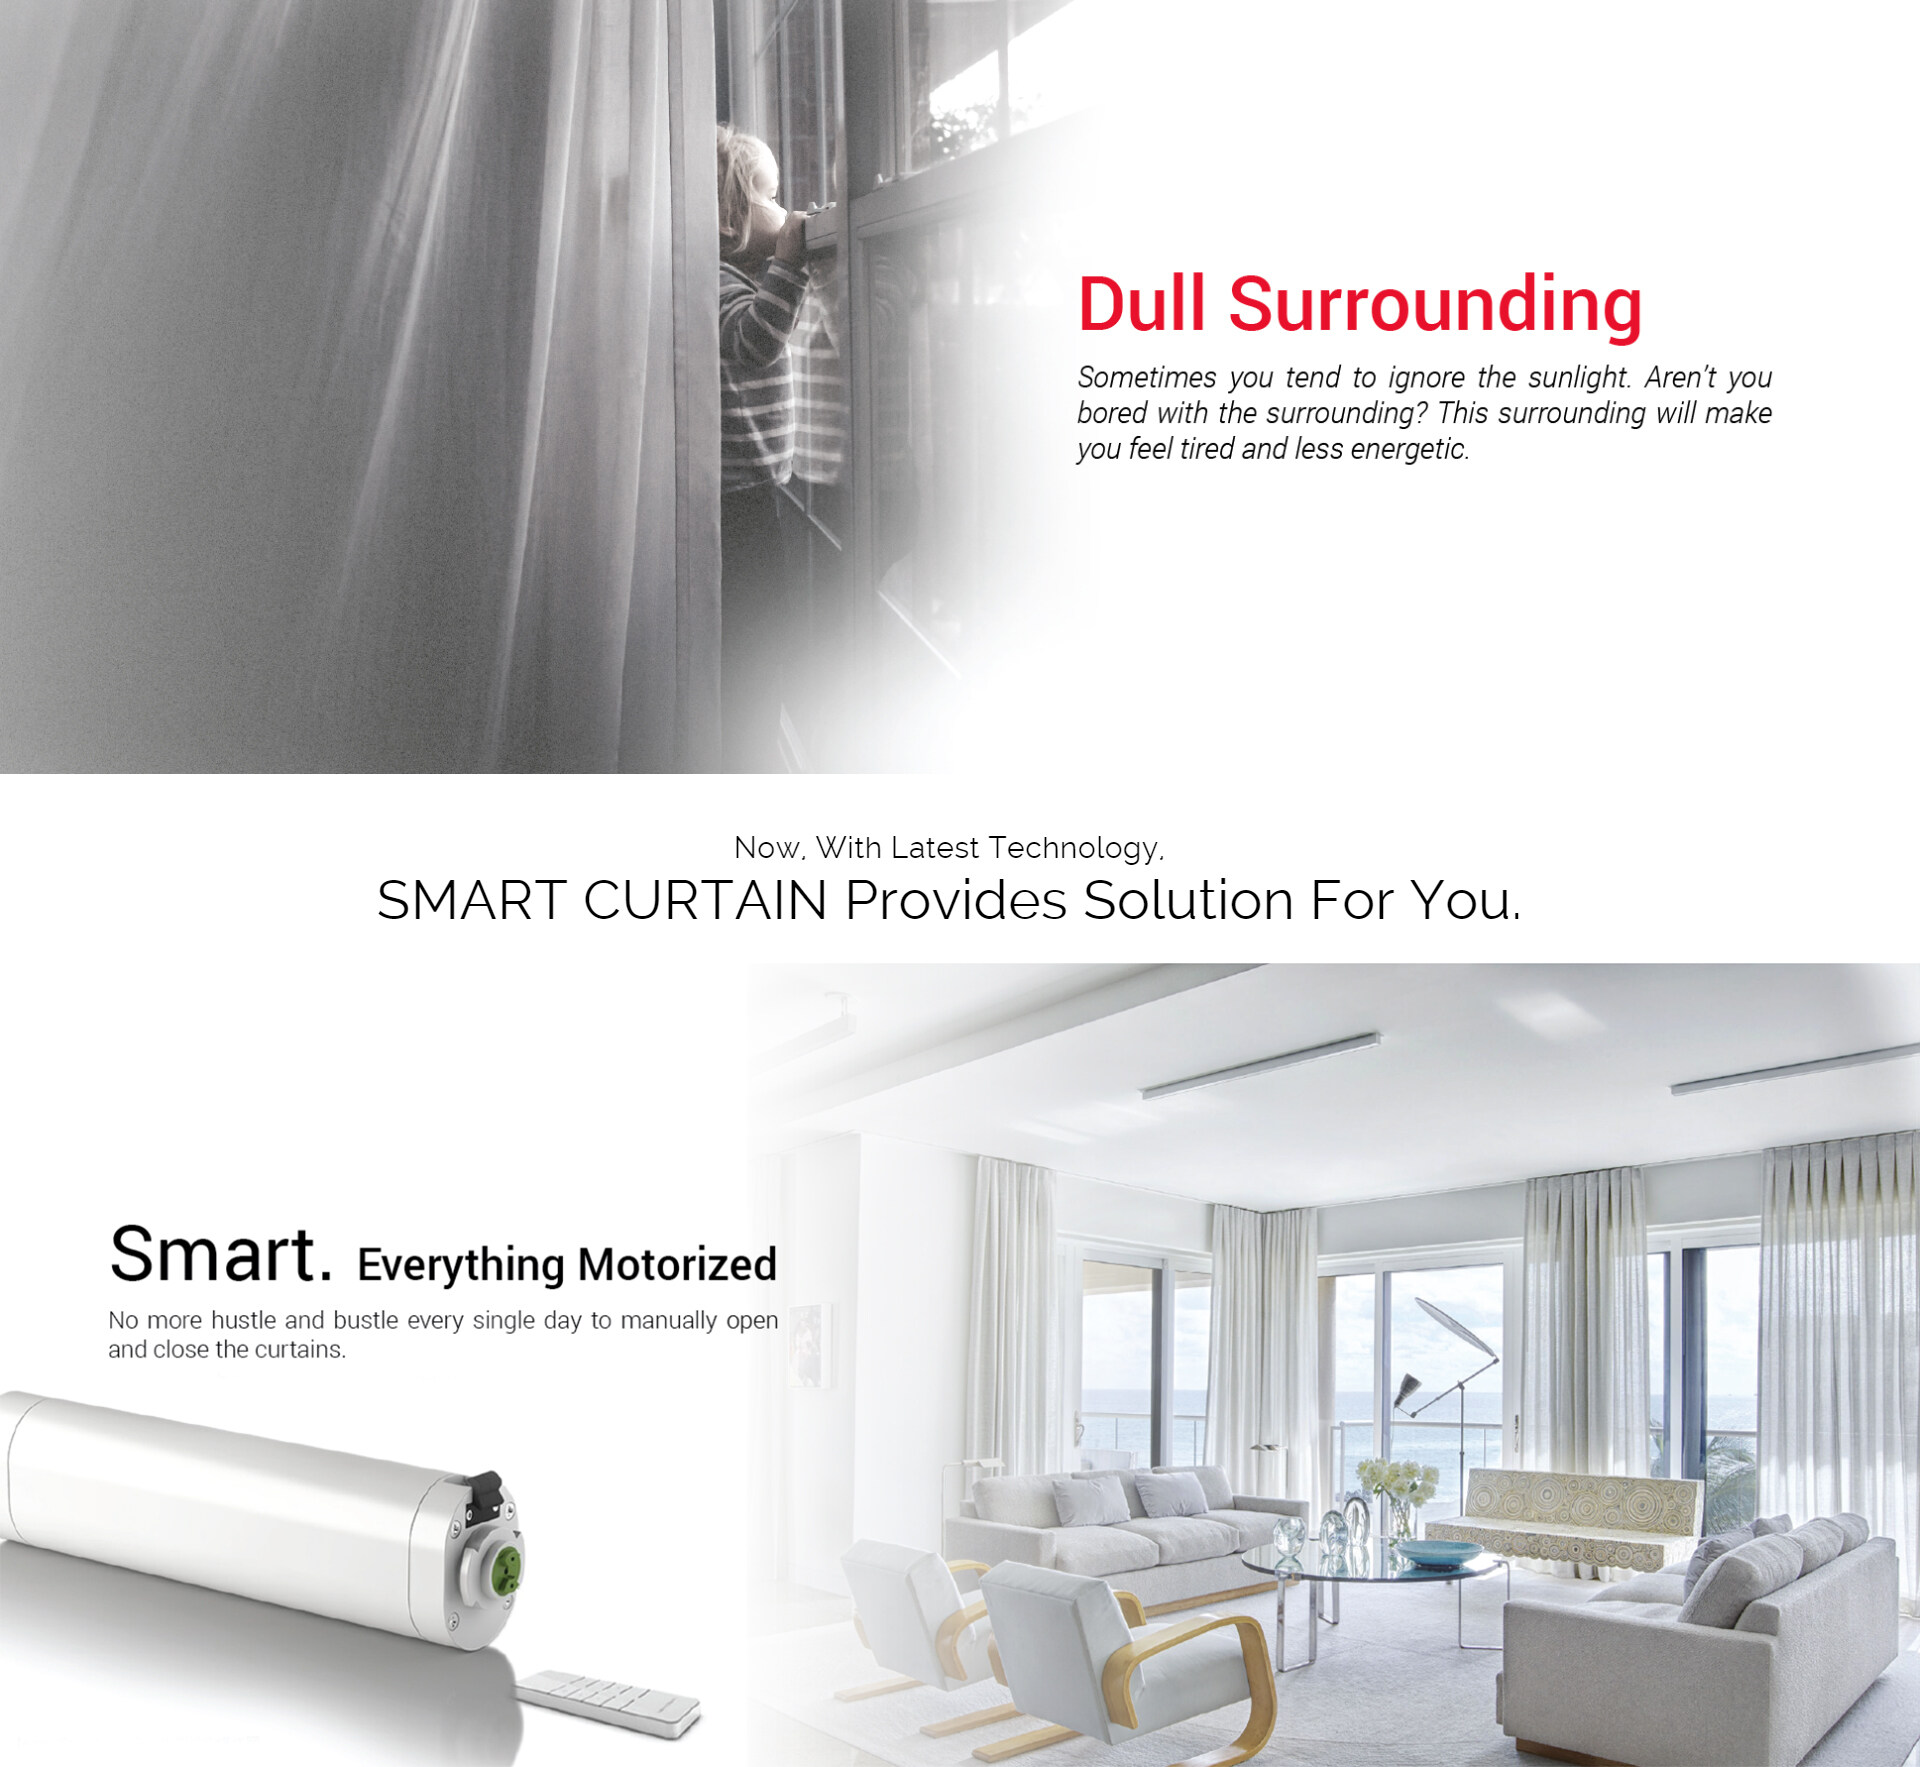 [FREE Installation] Silent Motor/Motorized Smart curtain 3 meter track - 5  year warranty-Include remote control, smart home controller,voice control